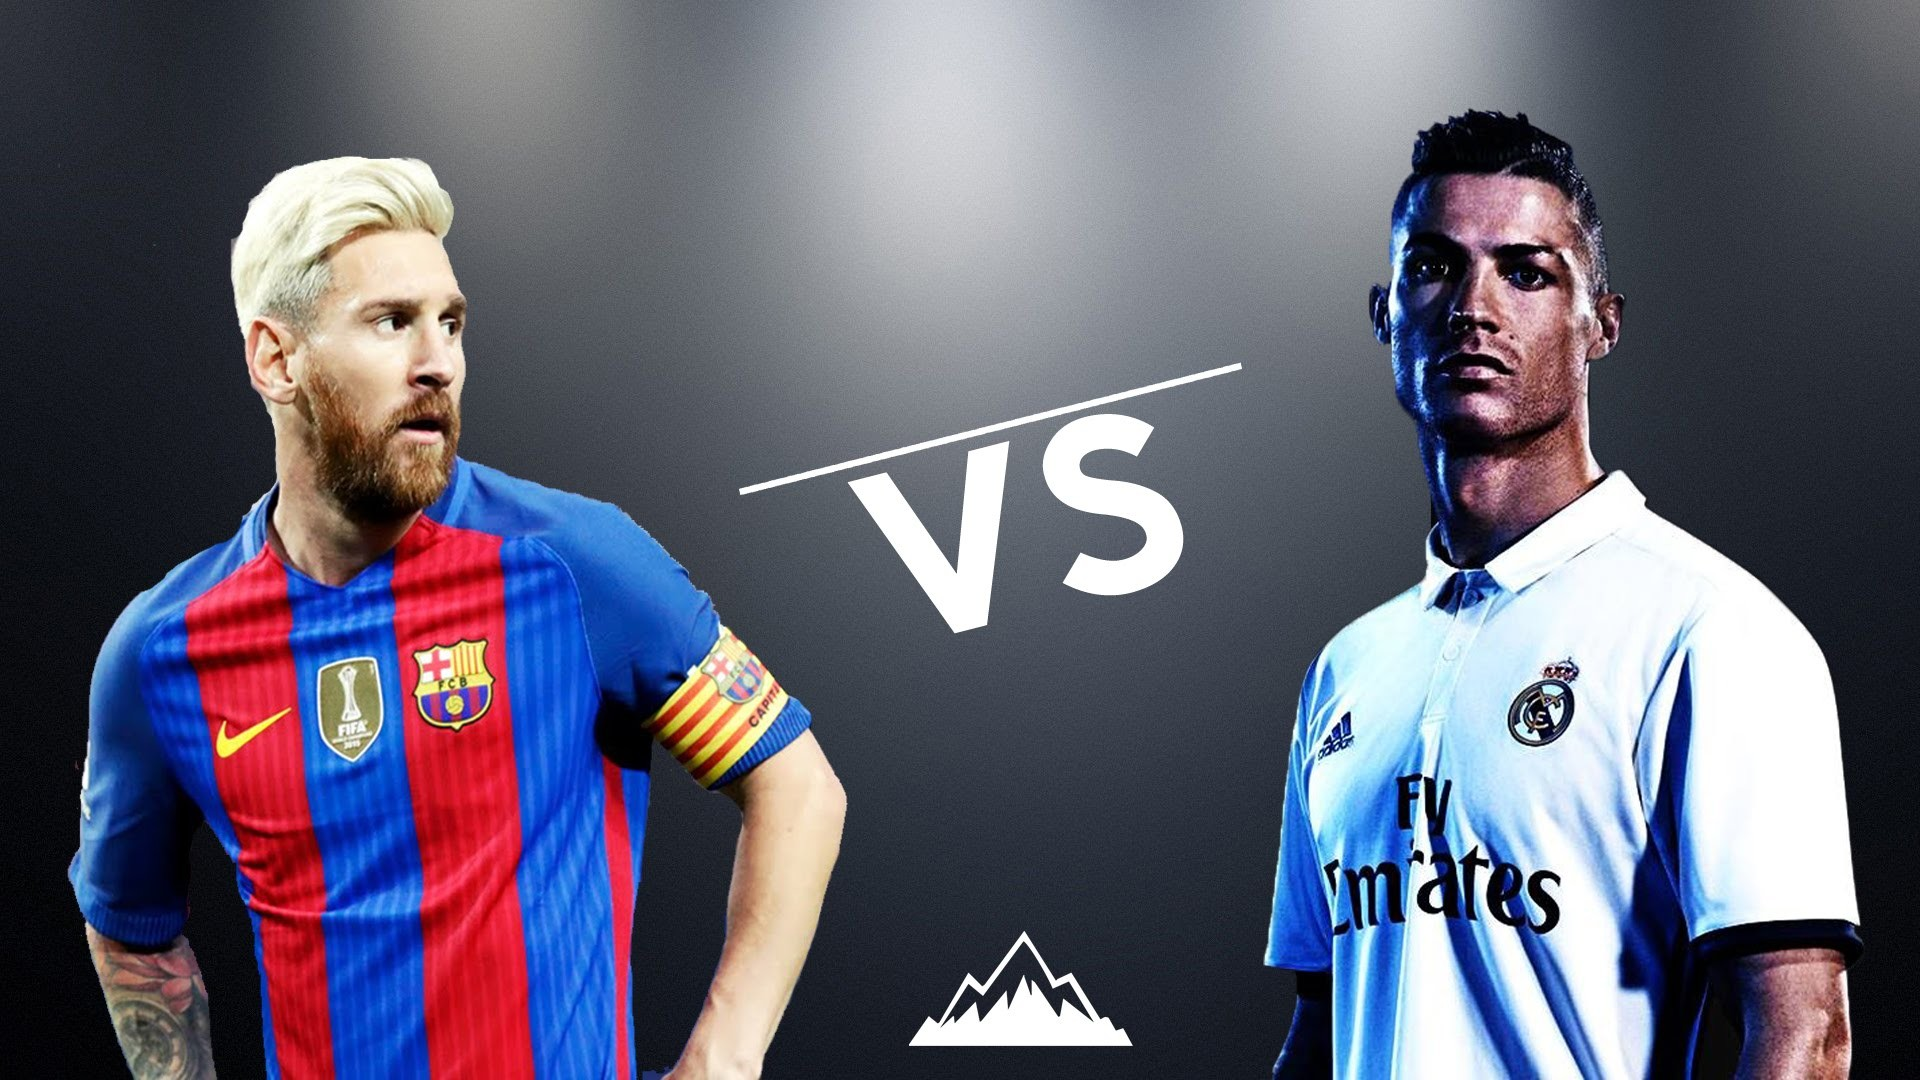 cristiano ronaldo vs lionel messi 2018 wallpaper 70 images